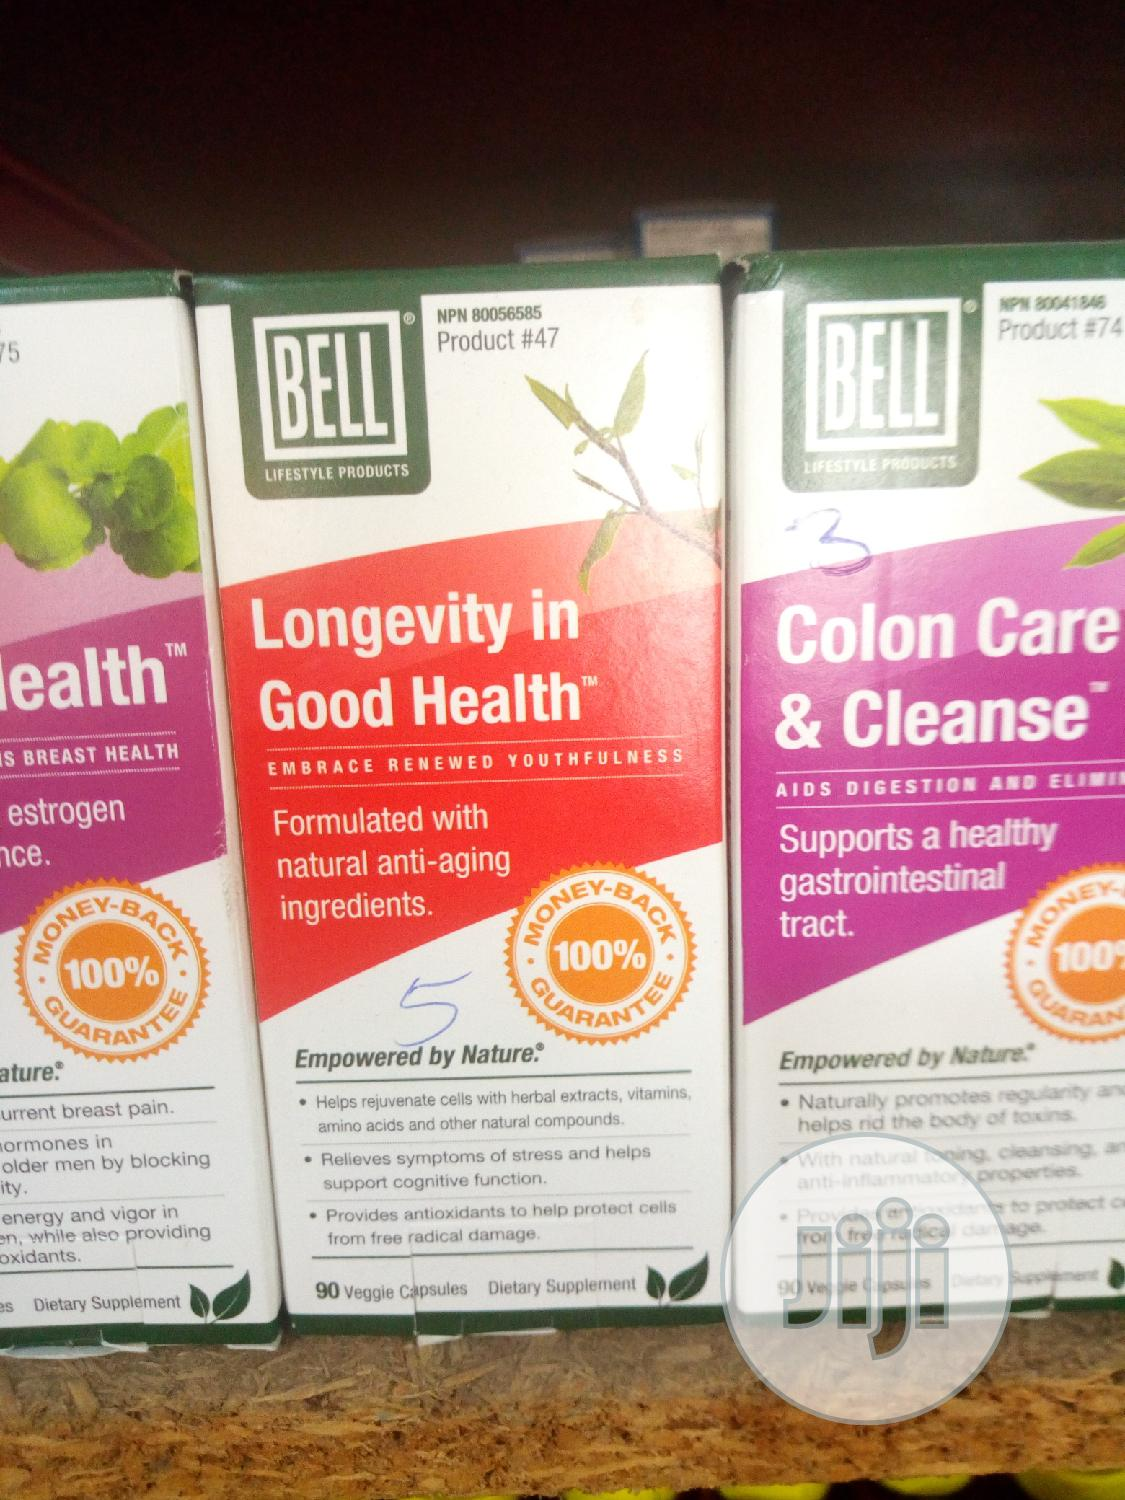 Longivity in Good Health Supplement Available for a Healthy Lifestyle